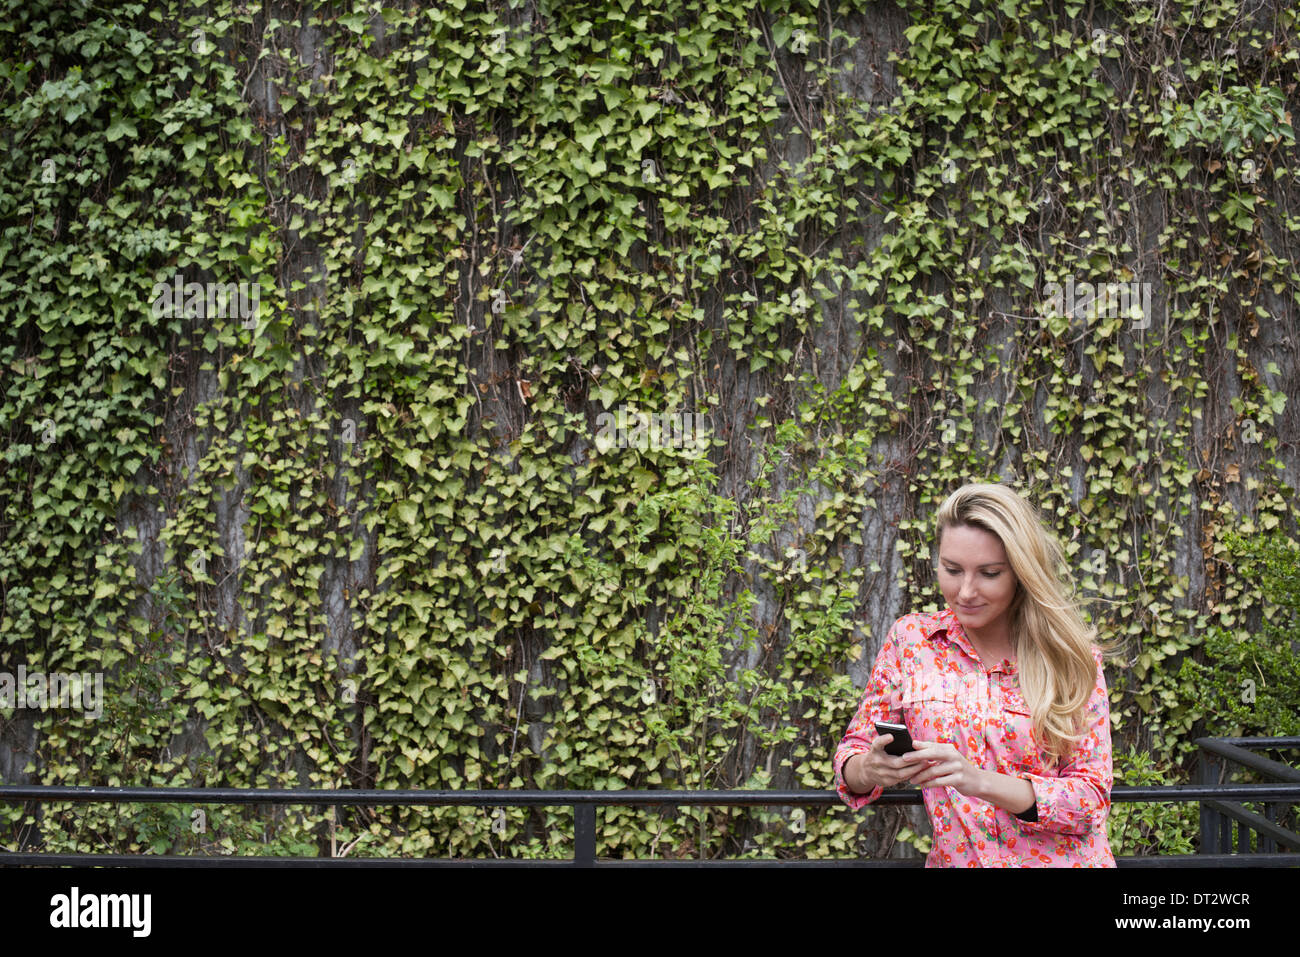 Spring City park with a wall covered in climbing plants and ivy A young blonde haired woman checking her smart phone - Stock Image